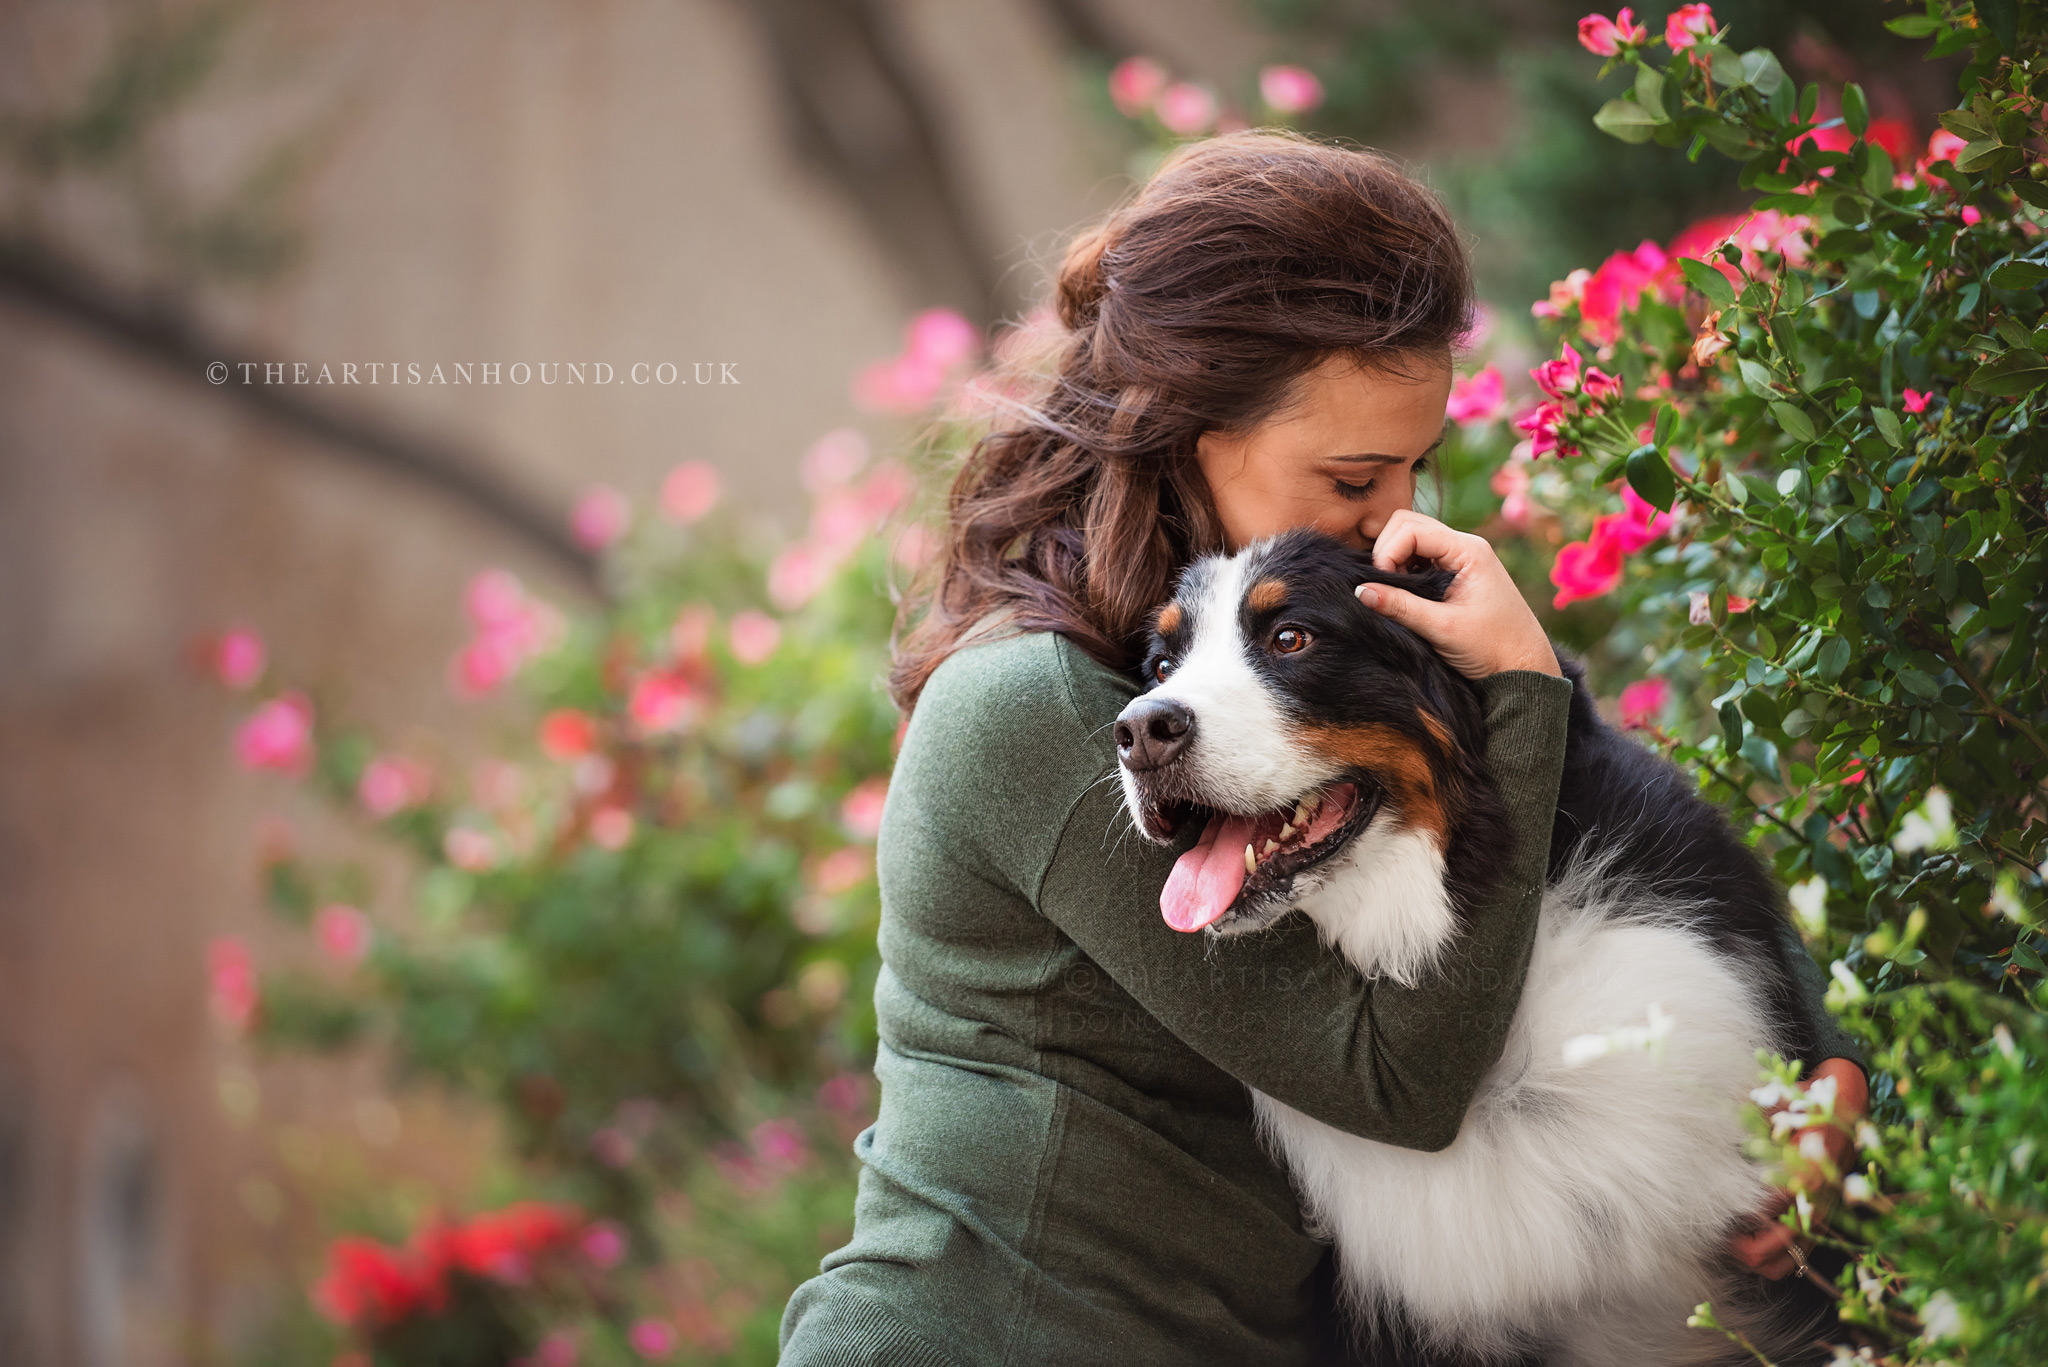 Owner cuddling dog near flowers